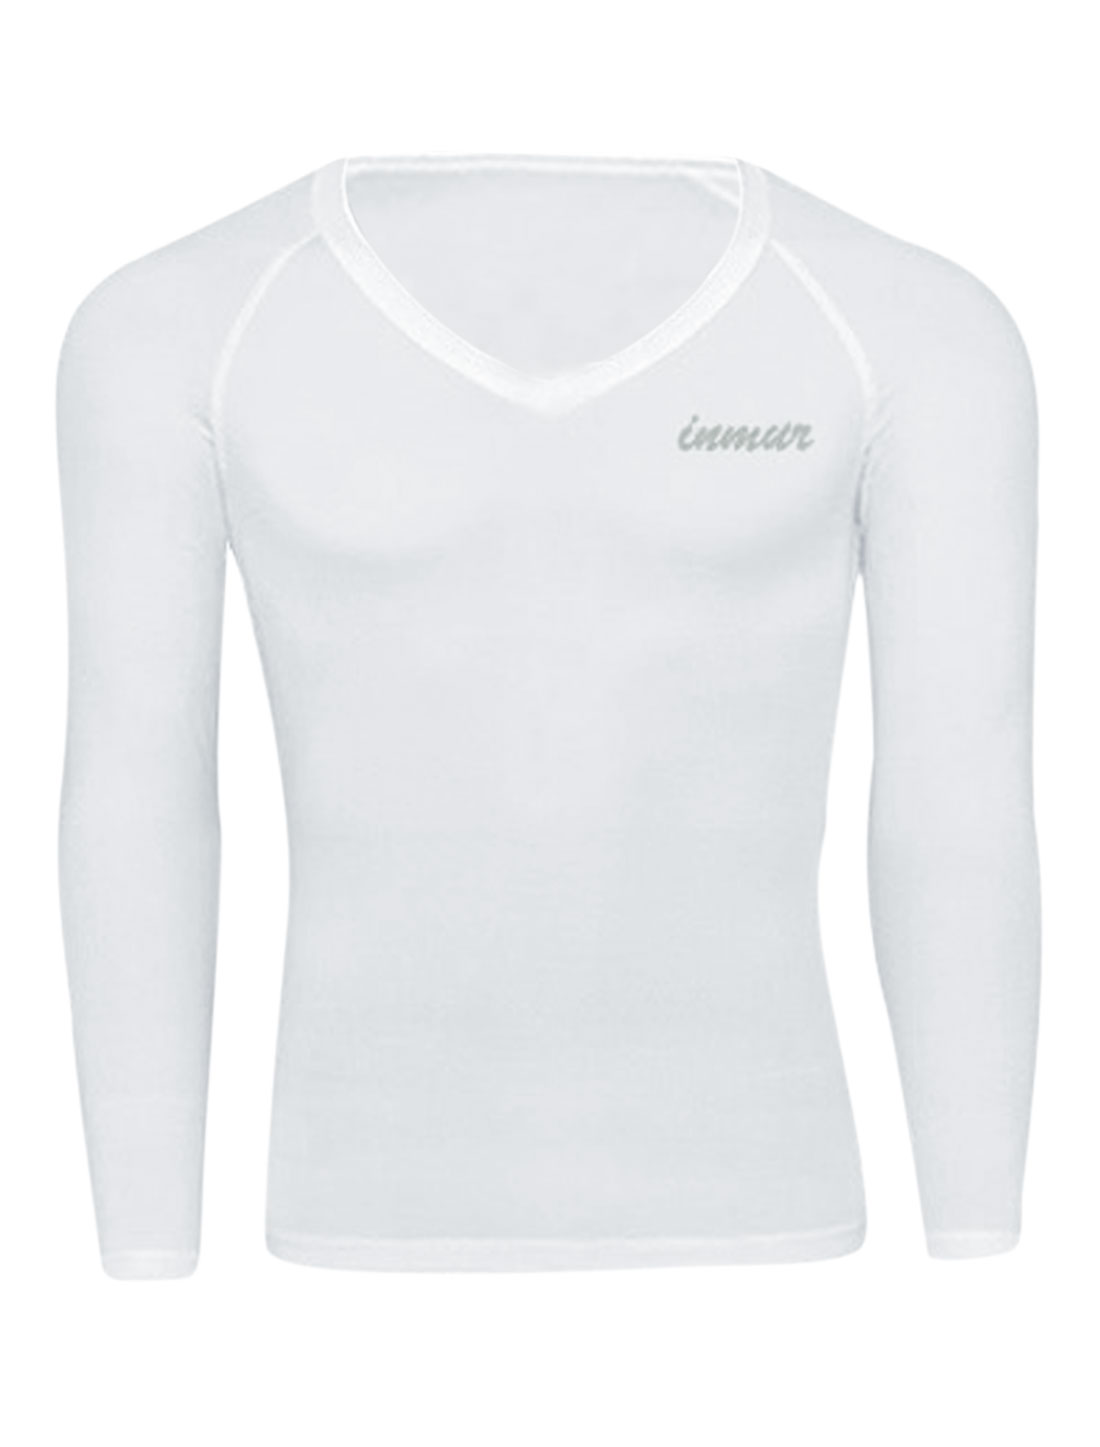 Men Pullover Raglan Sleeve Close-fitting Sports Tee Shirt White M